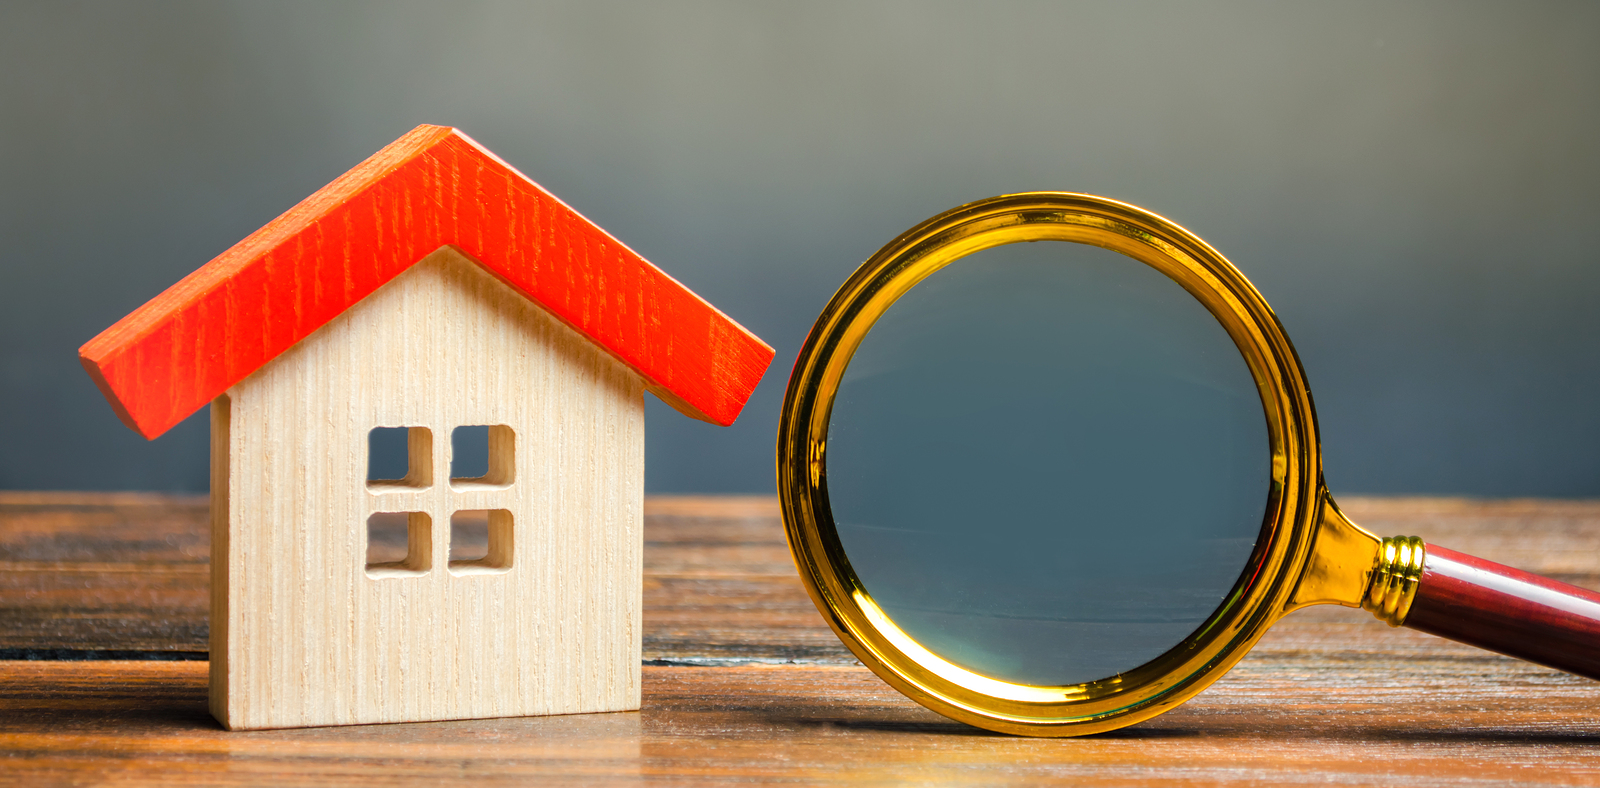 Miniature Wooden House And Magnifying Glass. Home Appraisal. Pro